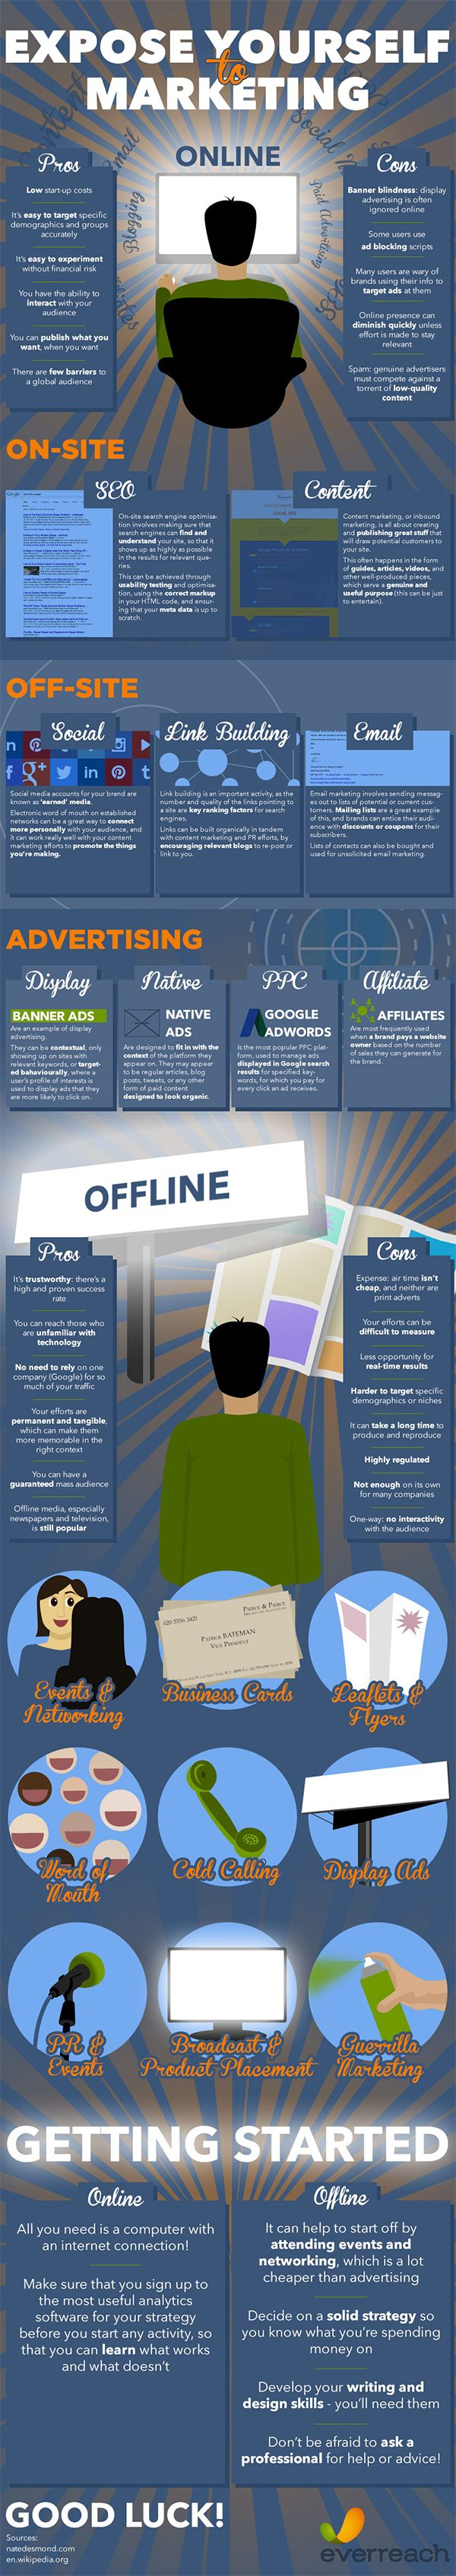 Marketing Basics 18 Online and Offline Tactics Every Business Should Use